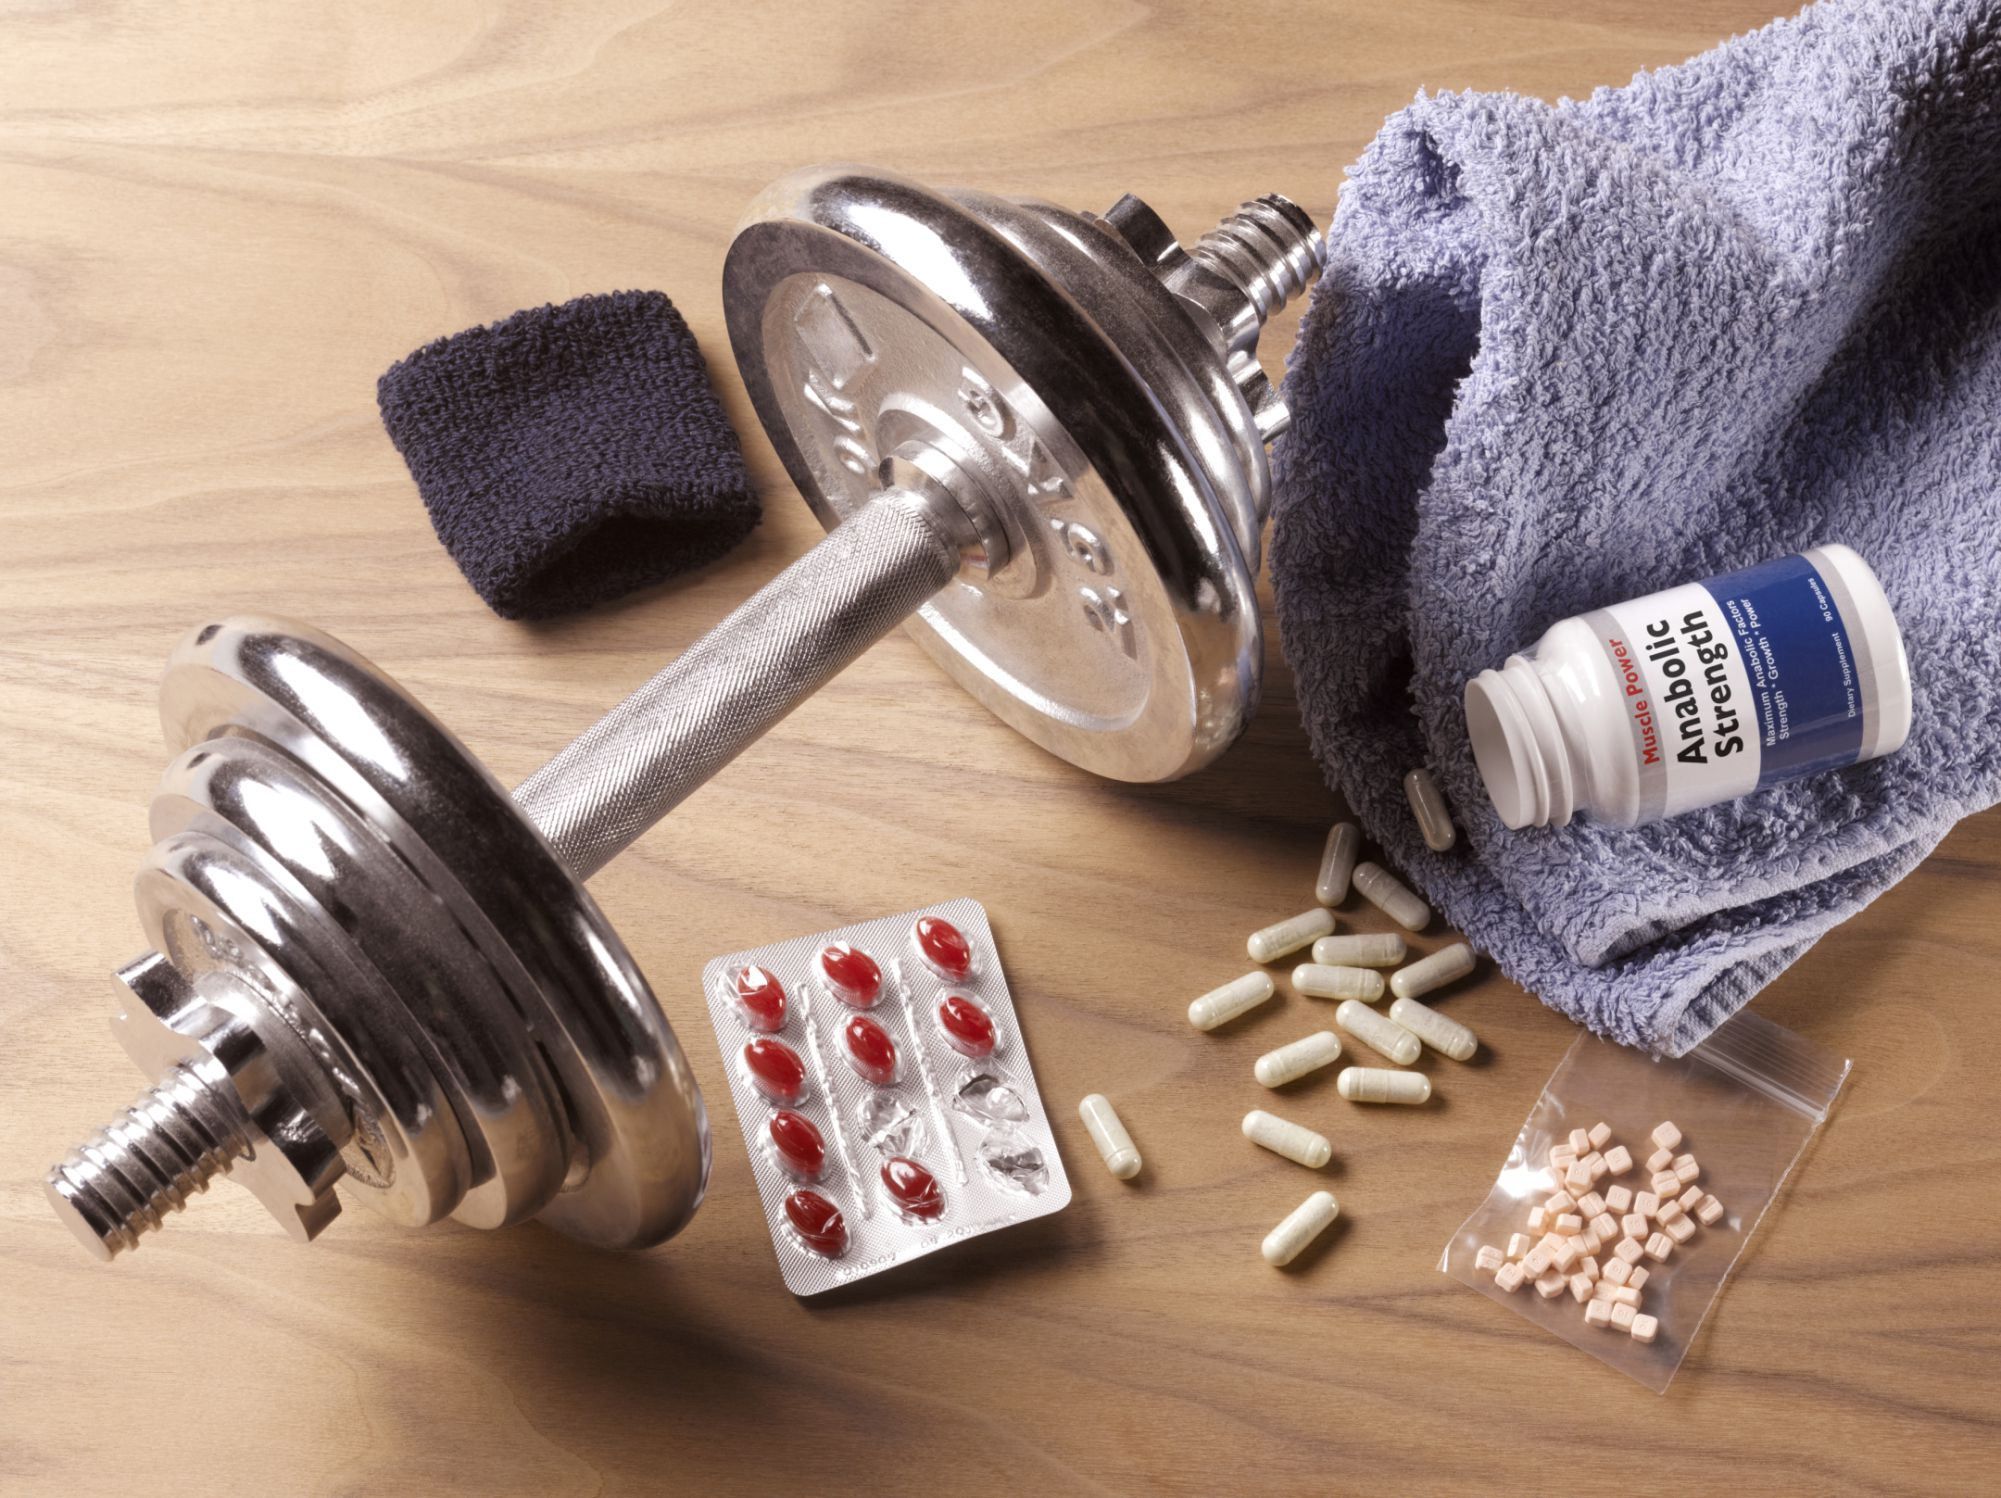 why performance enhancing drugs ruin sports Should performance enhancing drugs (such as steroids) be accepted in sports pros and cons of performance enhancing enhancing drugs, such as steroids, in sports.